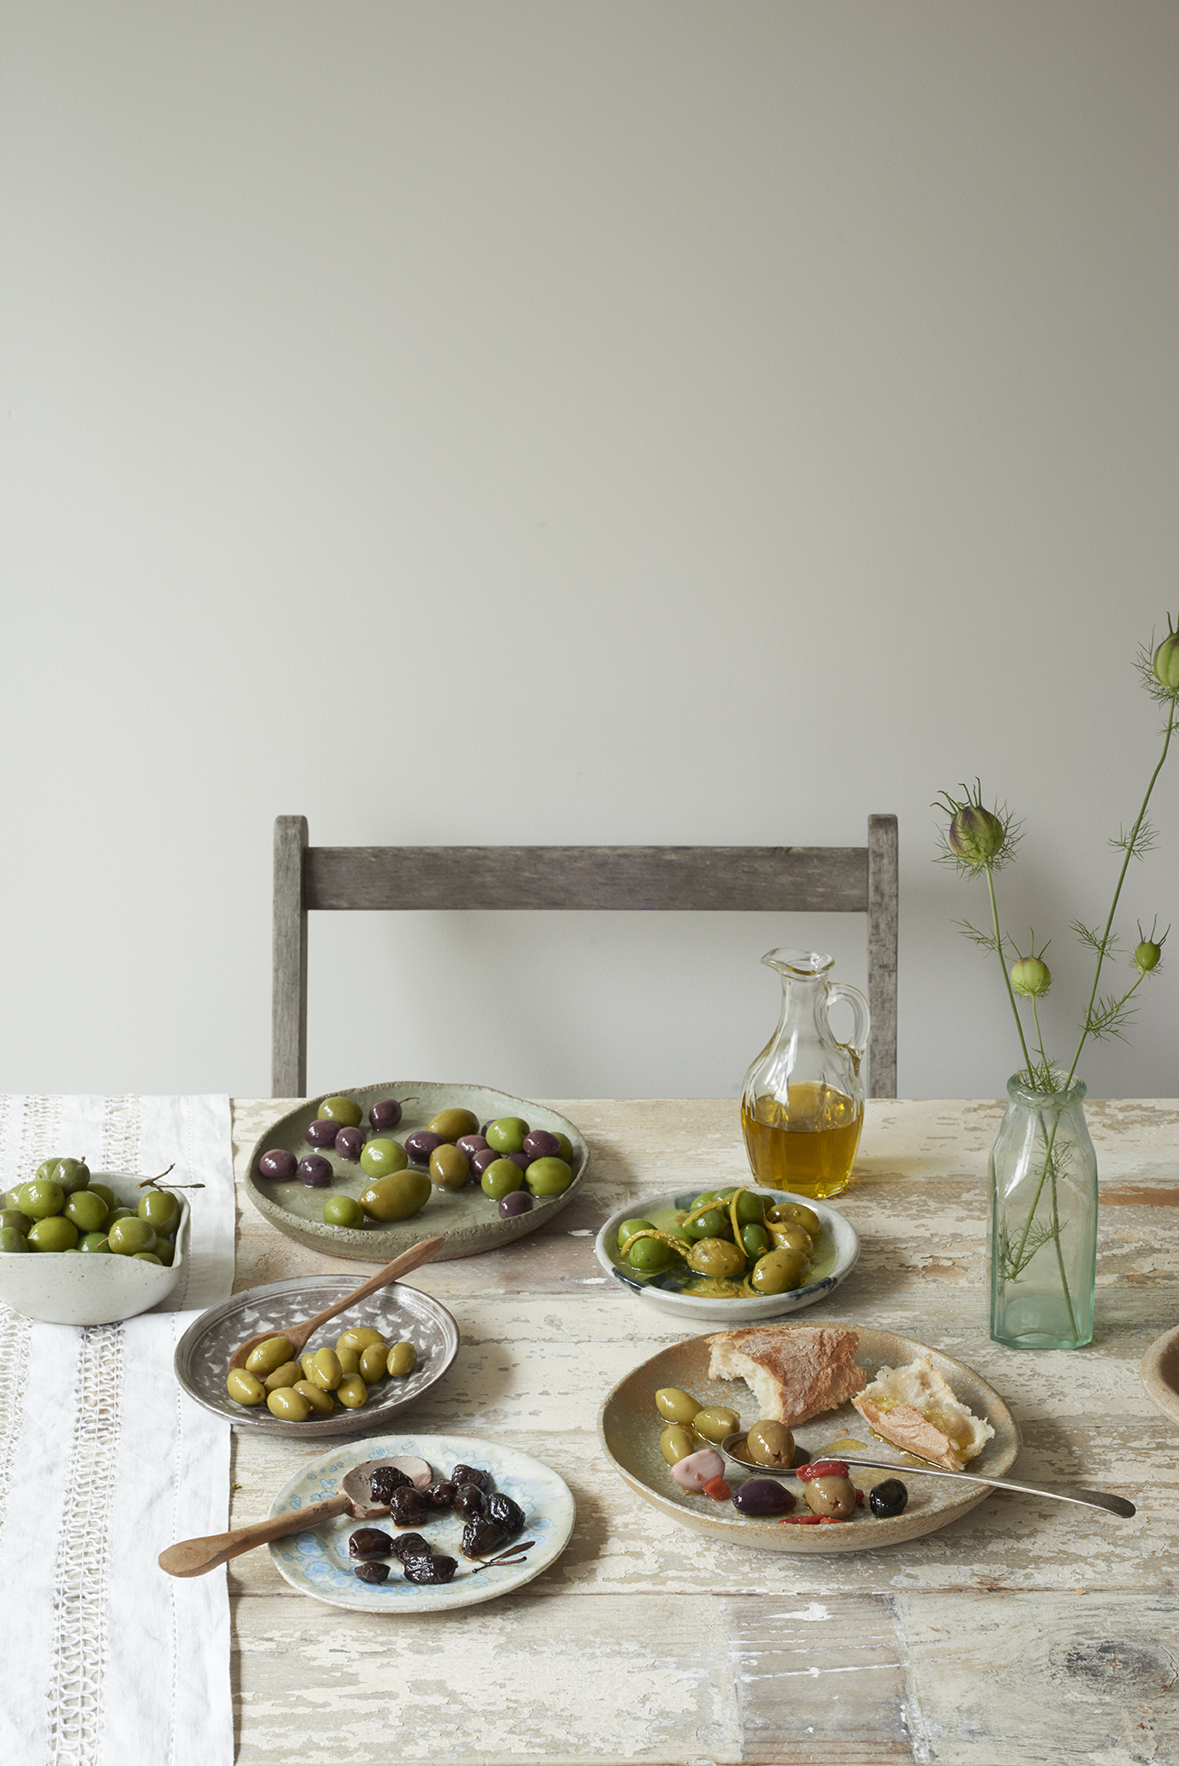 Sh01_Olives_Lifestyle_024.jpg